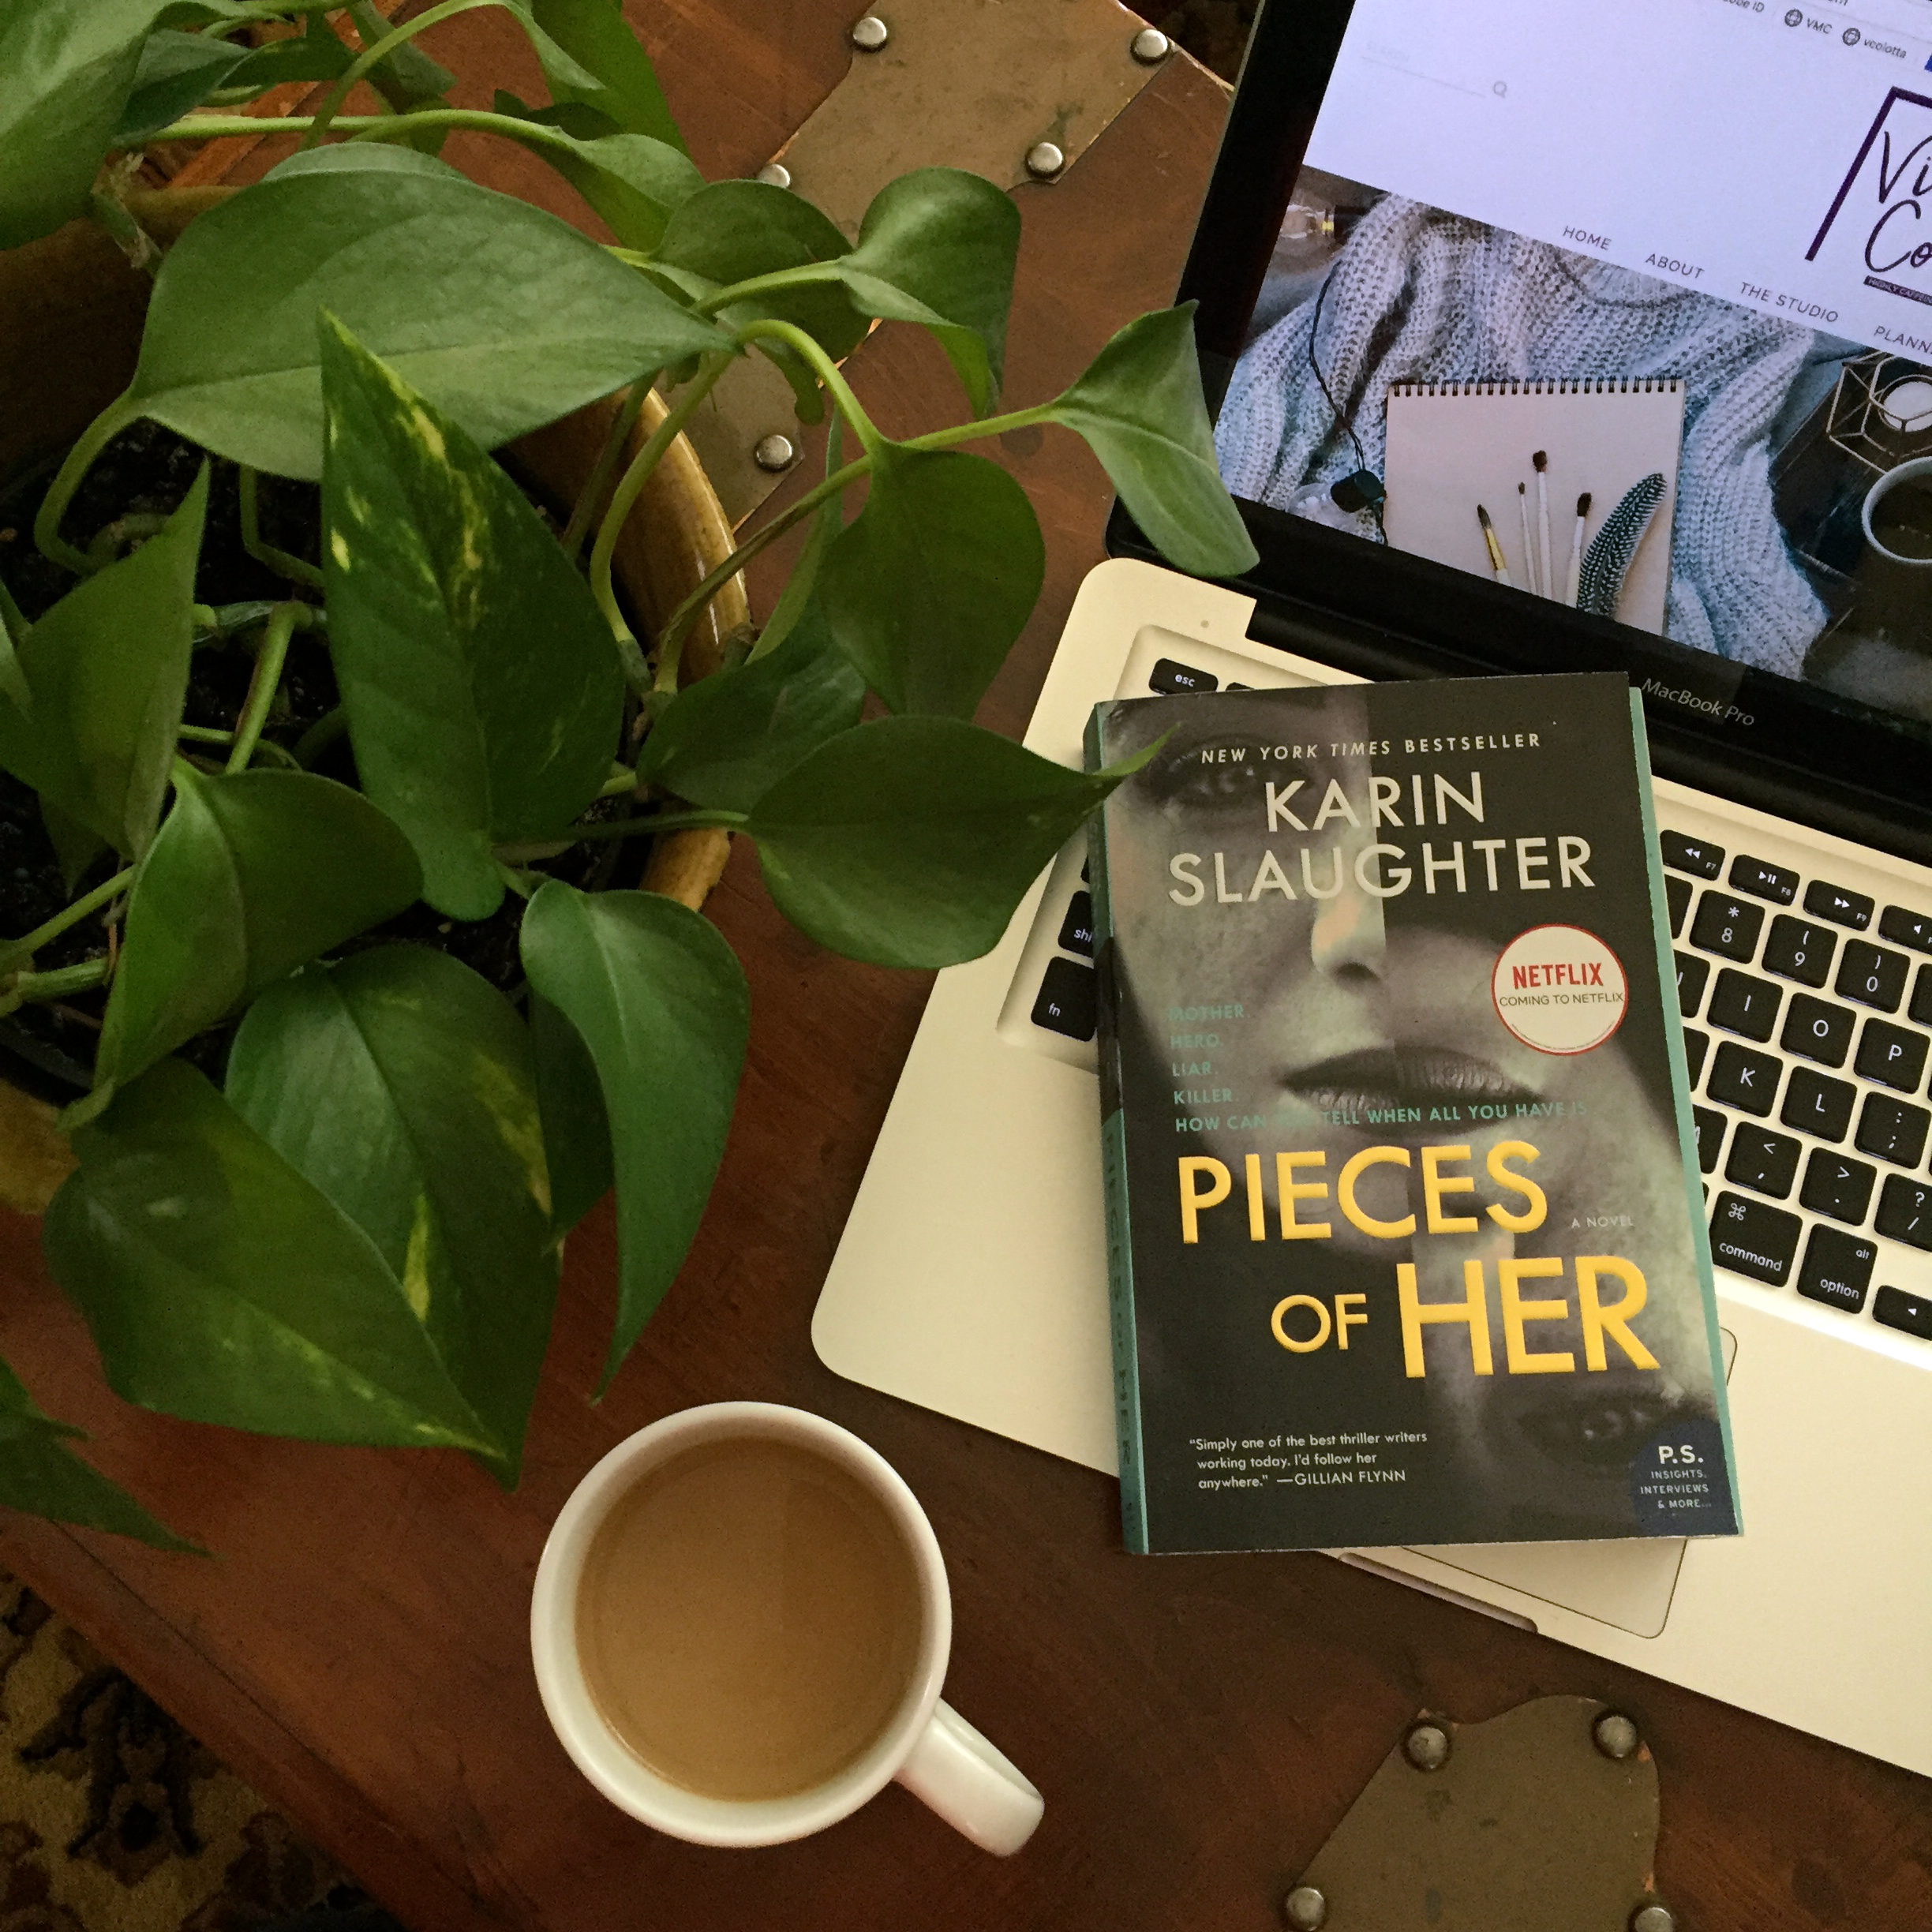 Book Review for PIECES OF HER by Karin Slaughter